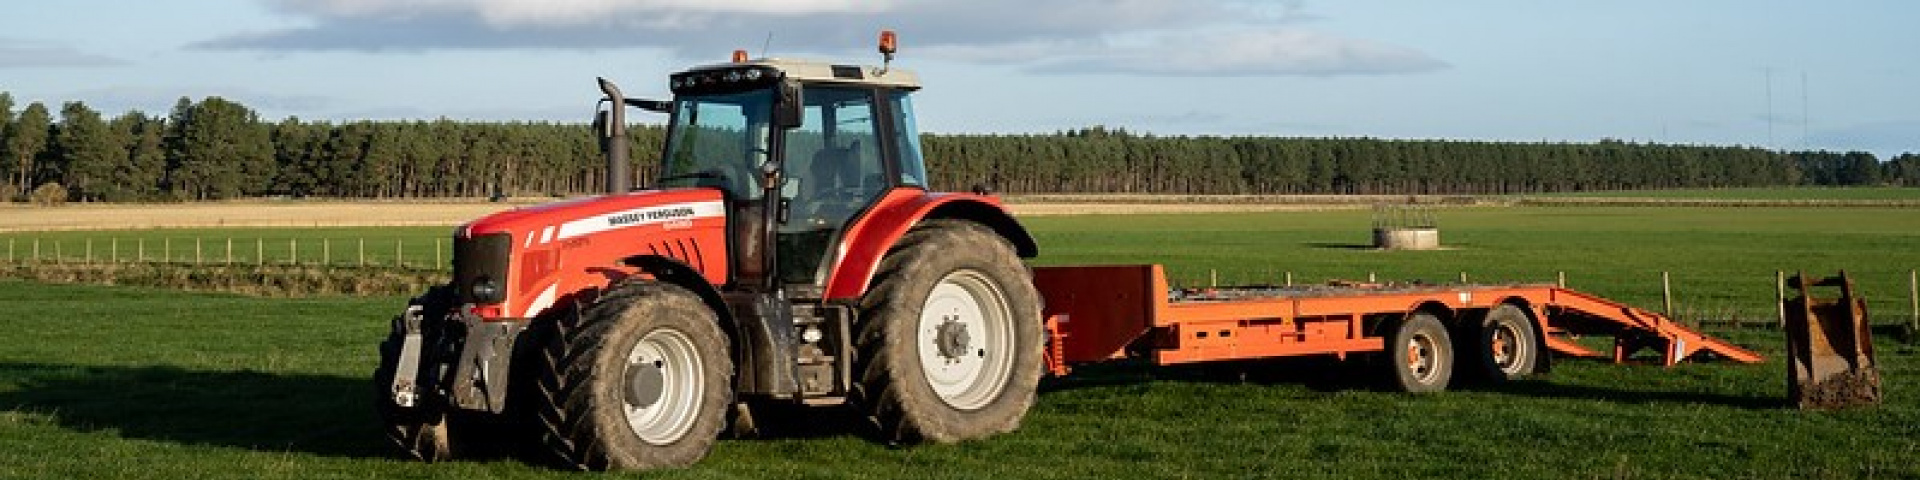 Red tractor on agricultural land in Scotland. Credit: Rural Matters.